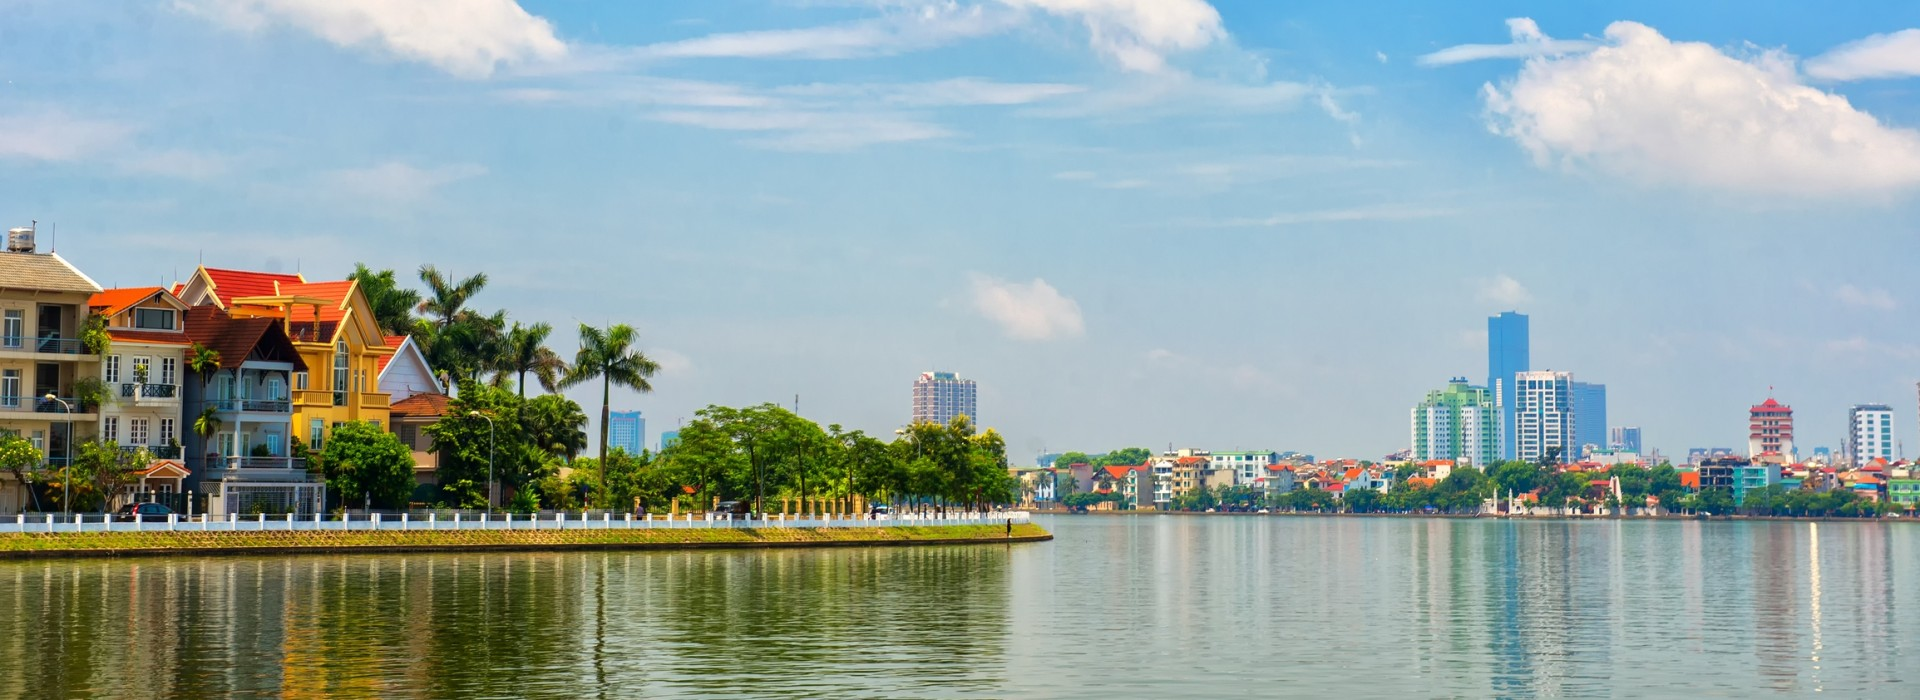 Travelling Hanoi - Tours and Trips in Hanoi